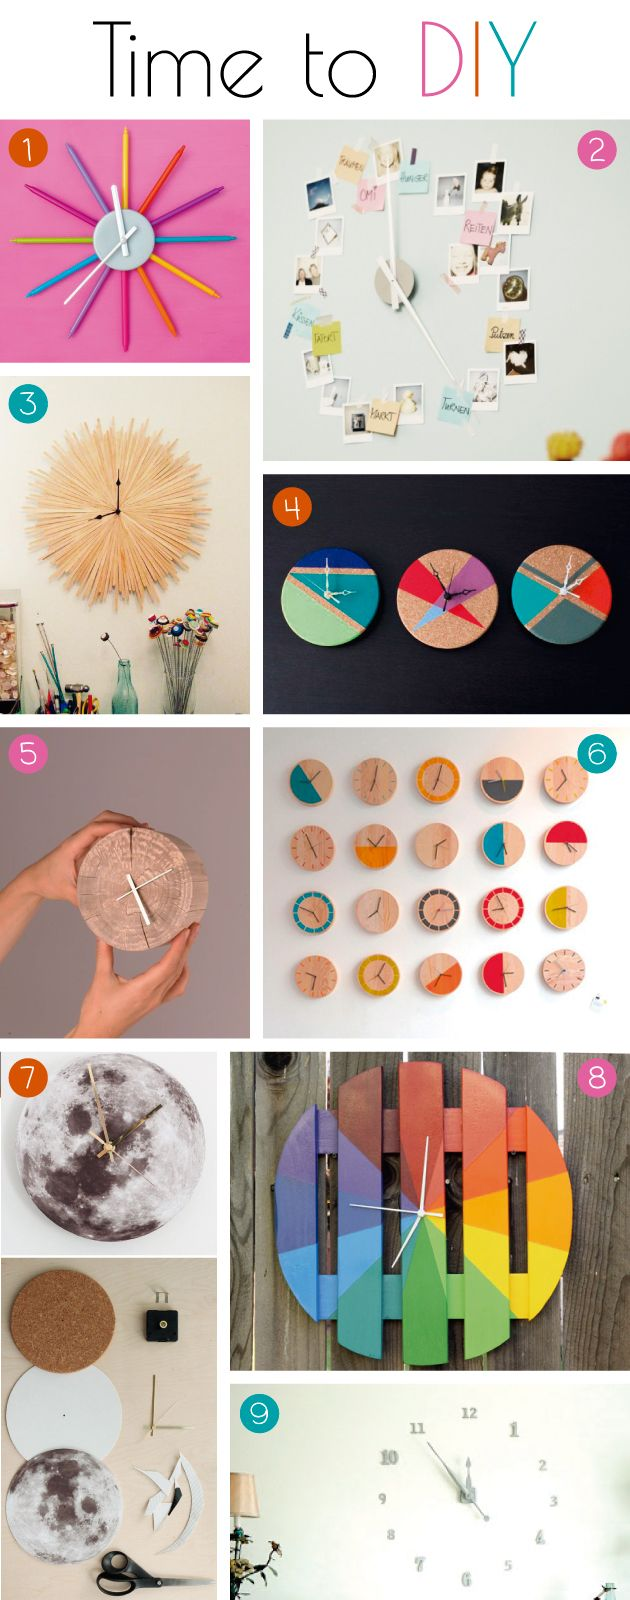 Make it yourself: // Relojes de pared